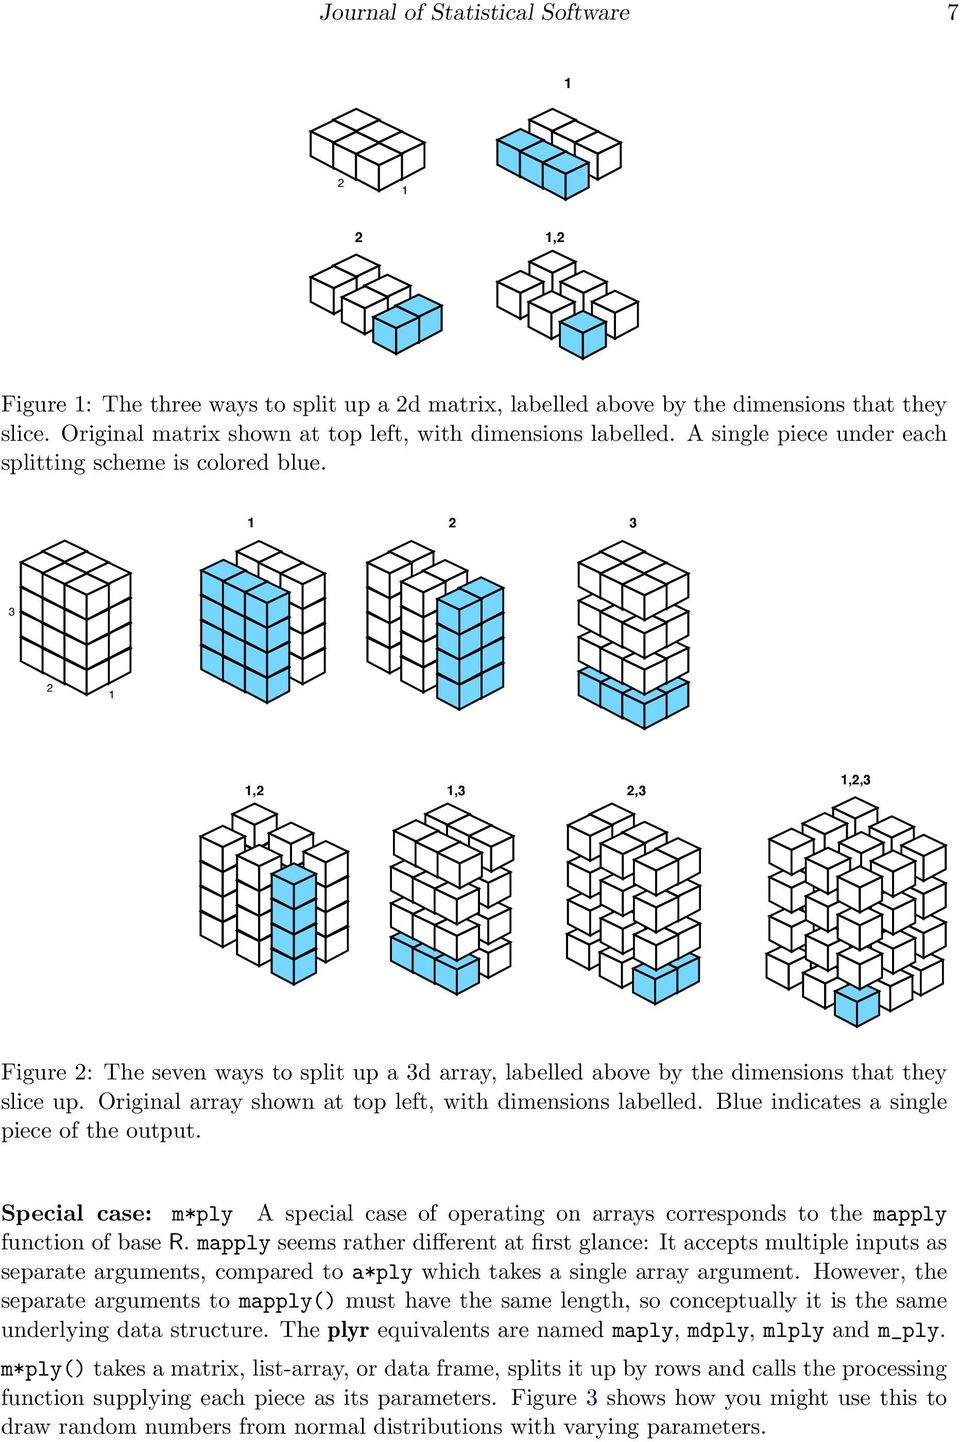 1 2 3 3 2 1 1,2 1,3 2,3 1,2,3 Figure 2: The seven ways to split up a 3d array, labelled above by the dimensions that they slice up. Original array shown at top left, with dimensions labelled.